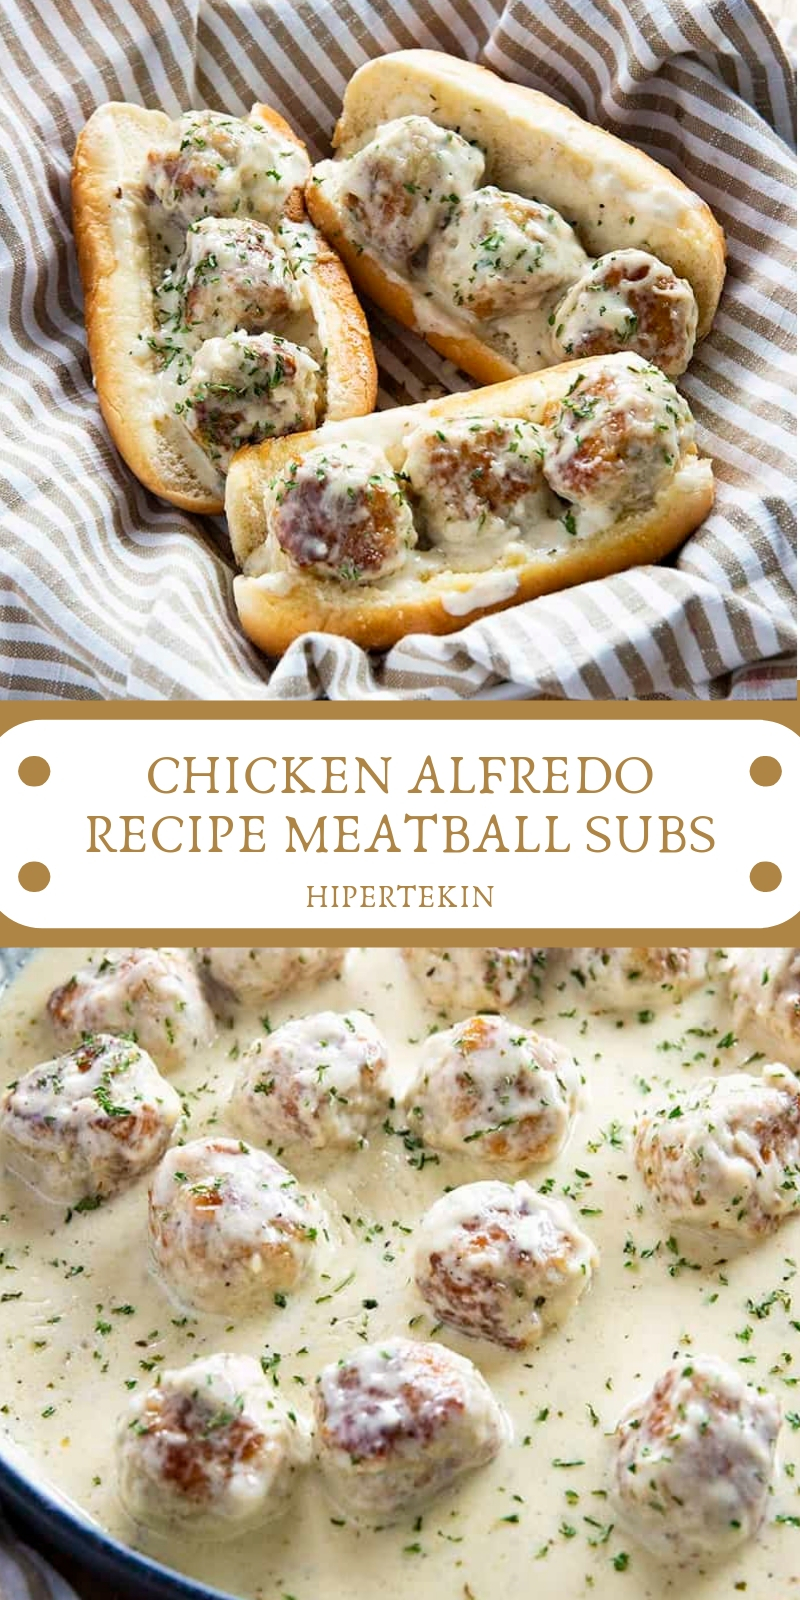 CHICKEN ALFREDO RECIPE MEATBALL SUBS